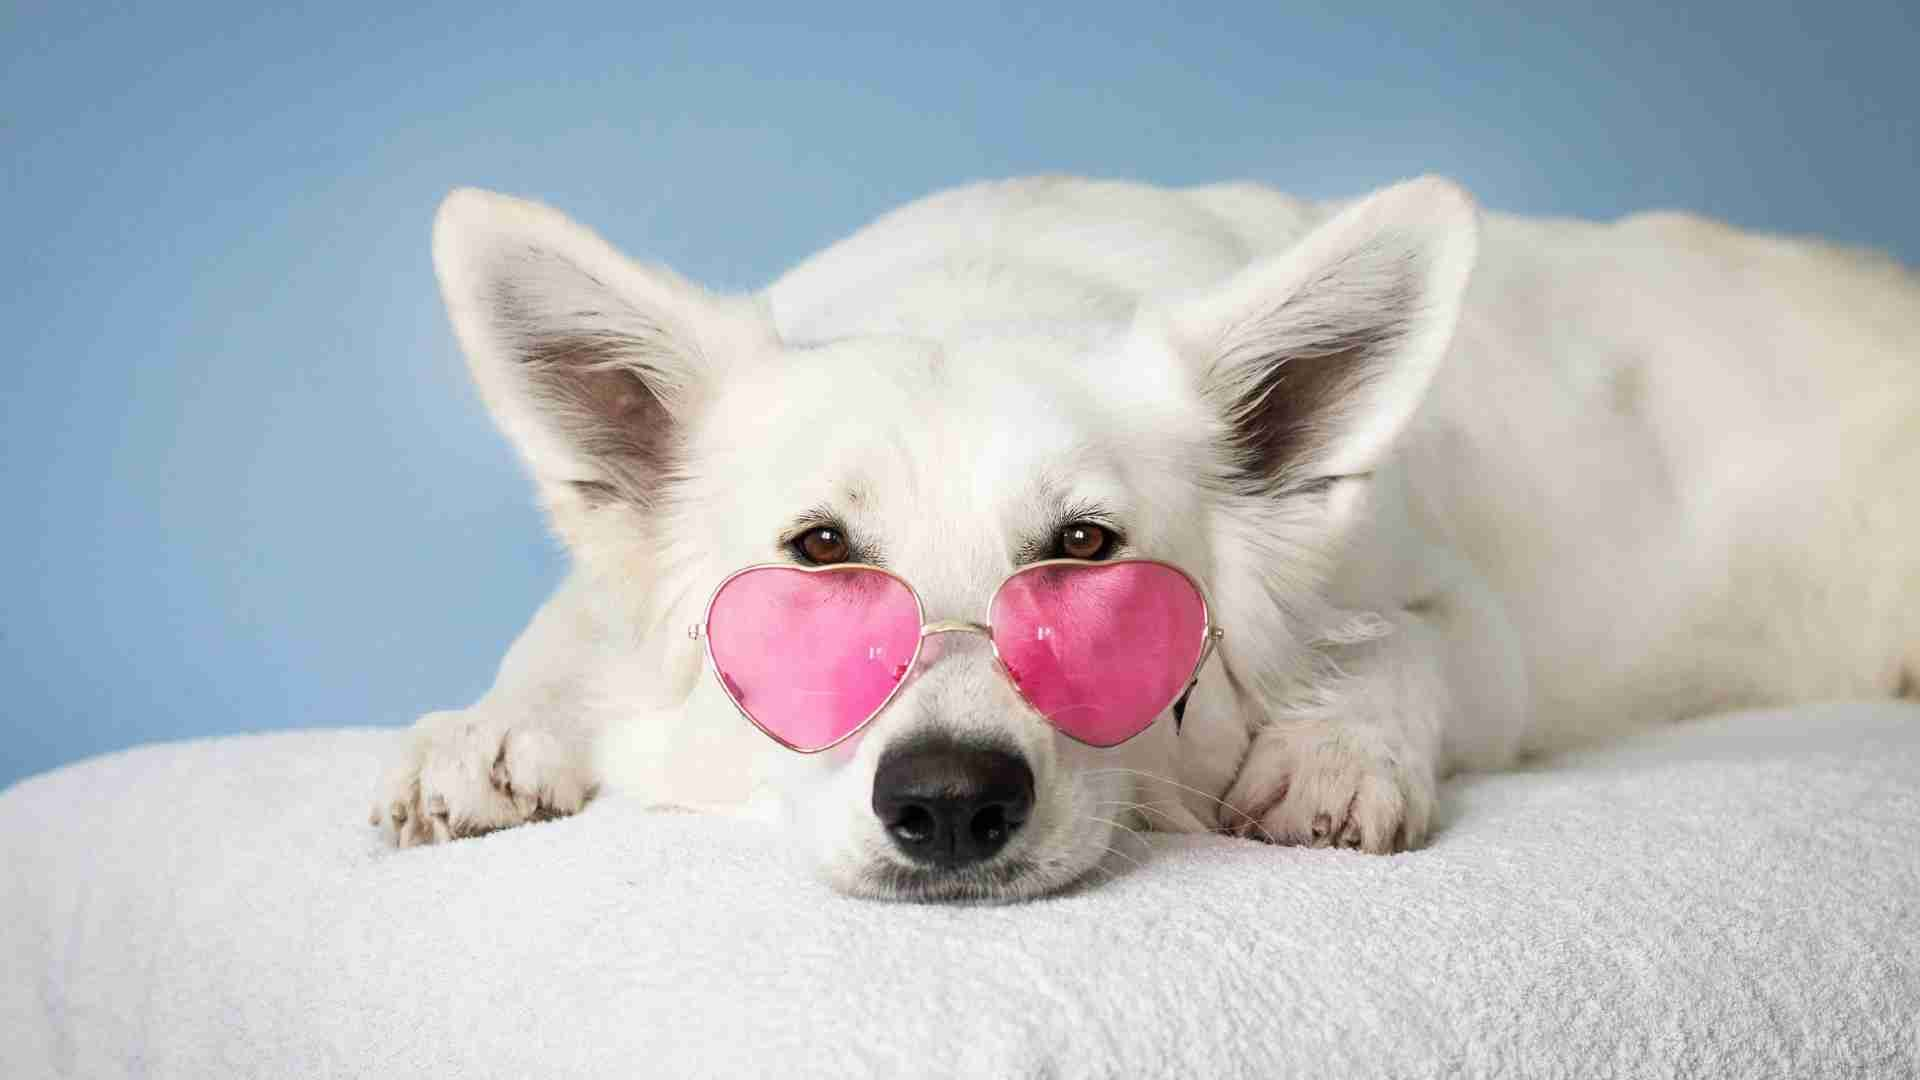 Best CBD Oil For Dogs 2020: Reviews & Buyer's Guide